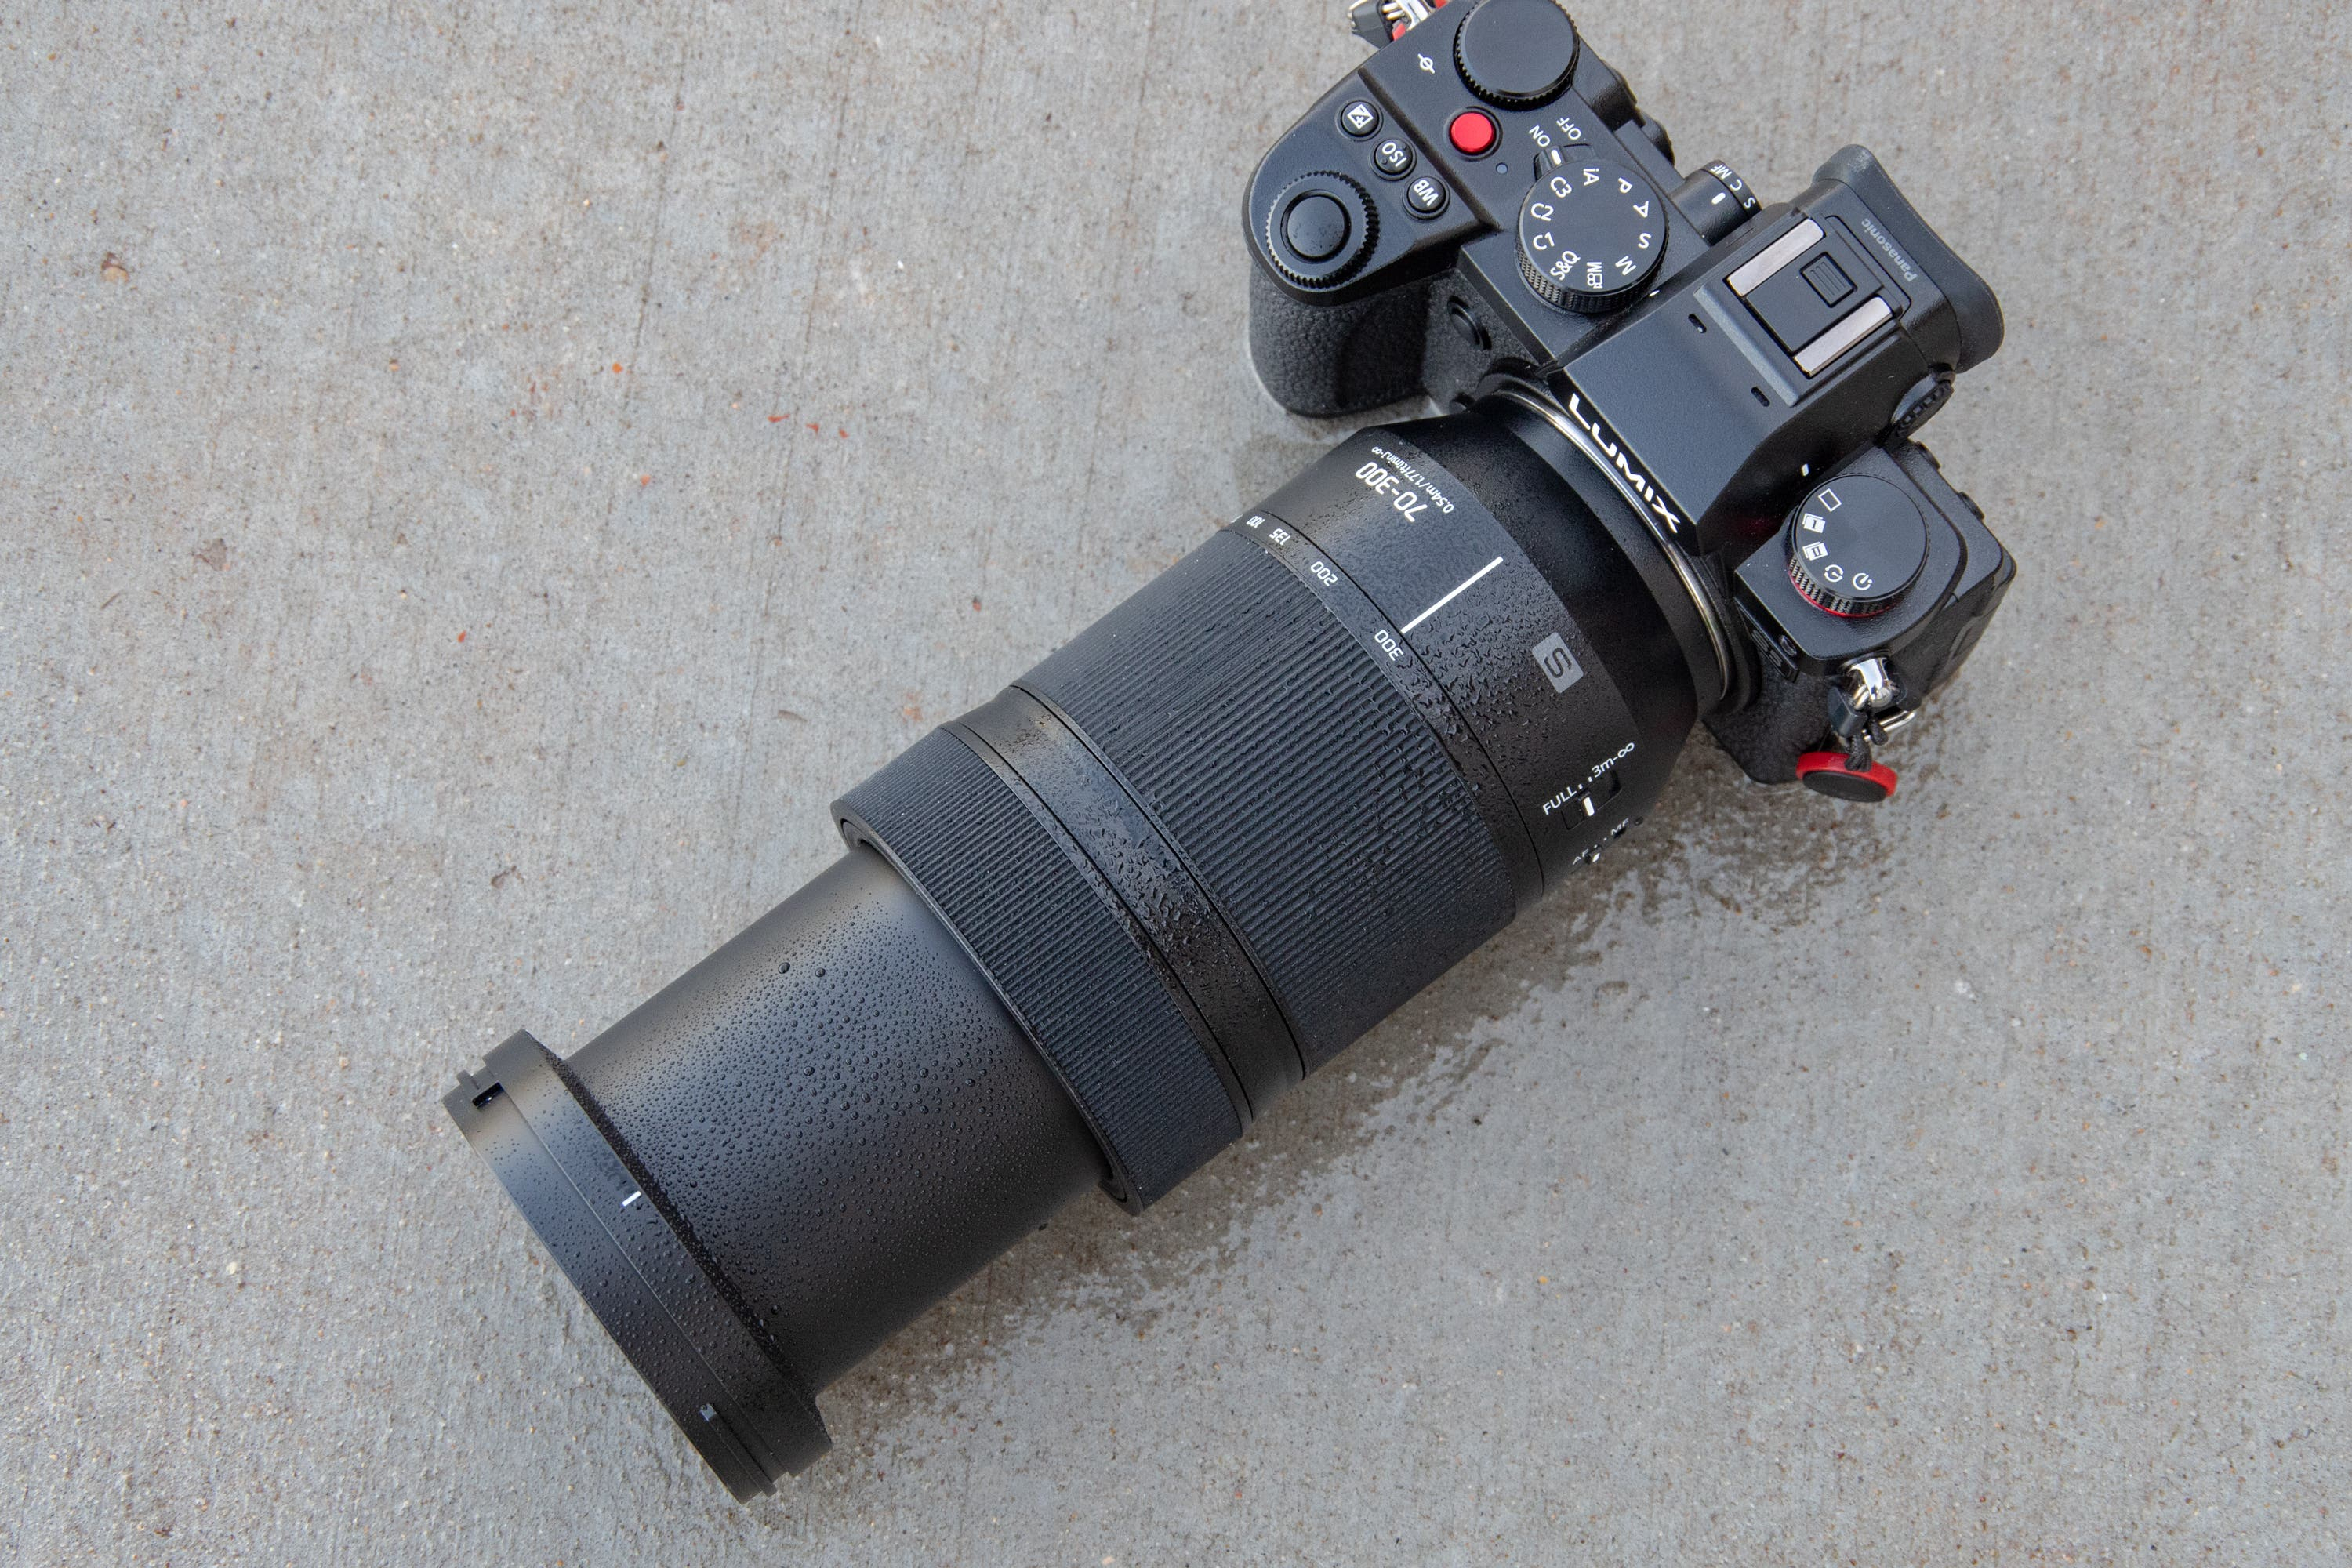 A Great Telephoto for L Mount: Panasonic 70-300mm F4.5-5.6 Review